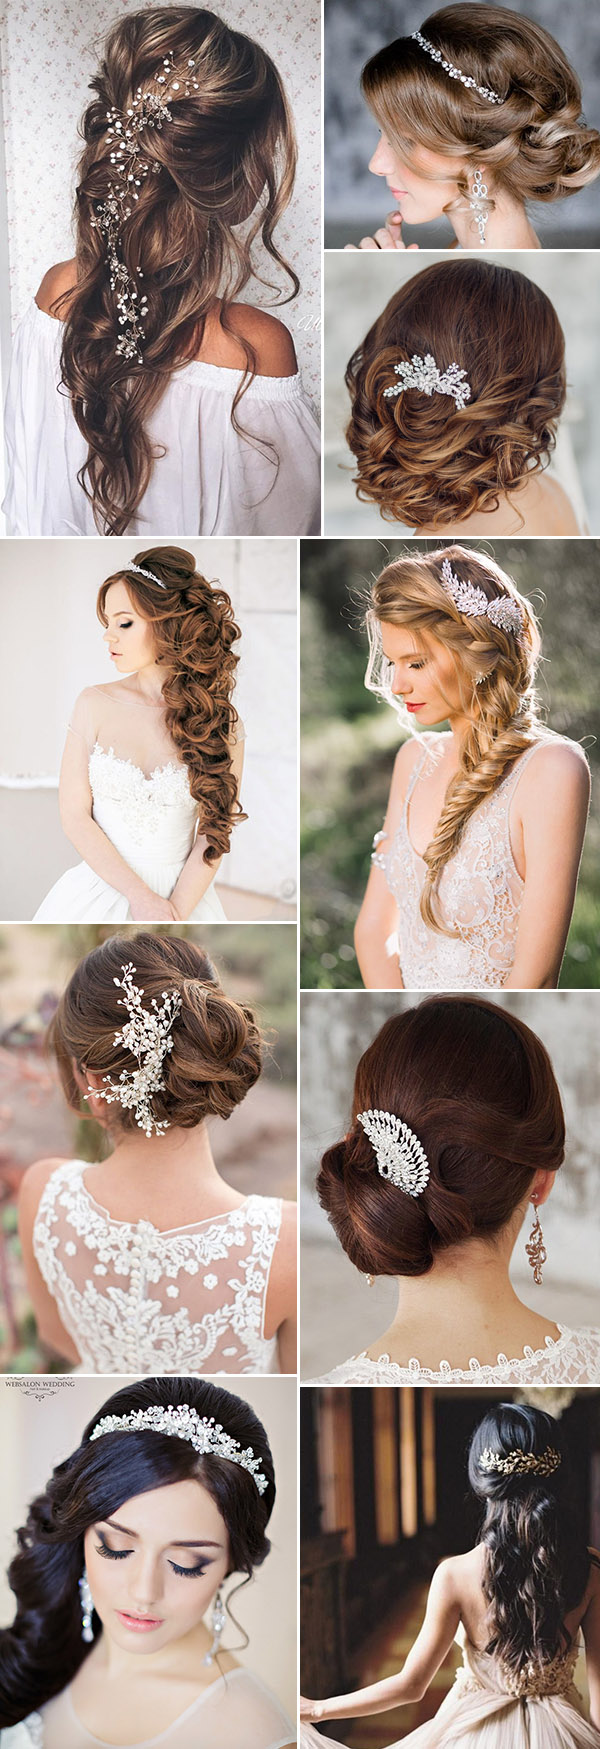 beautiful wedding hairstyles-with-bridal headpieces and wedding hair accessories